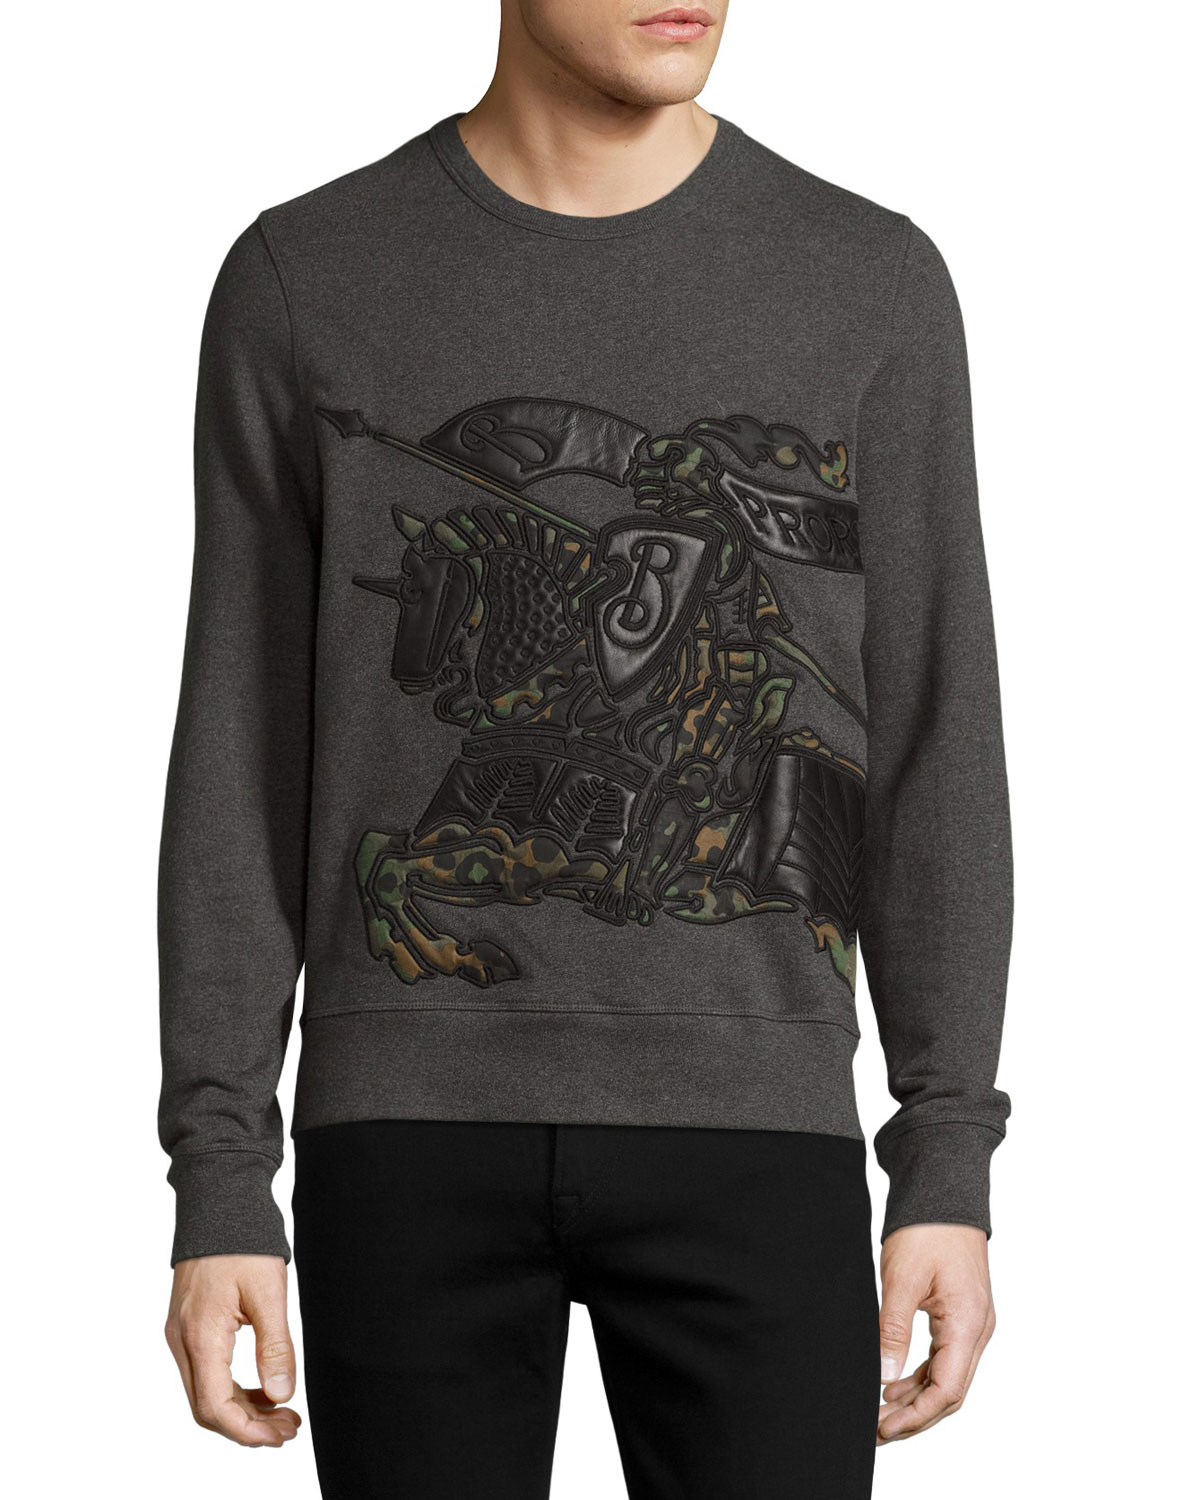 Camo & Leather Equestrian Knight Sweatshirt